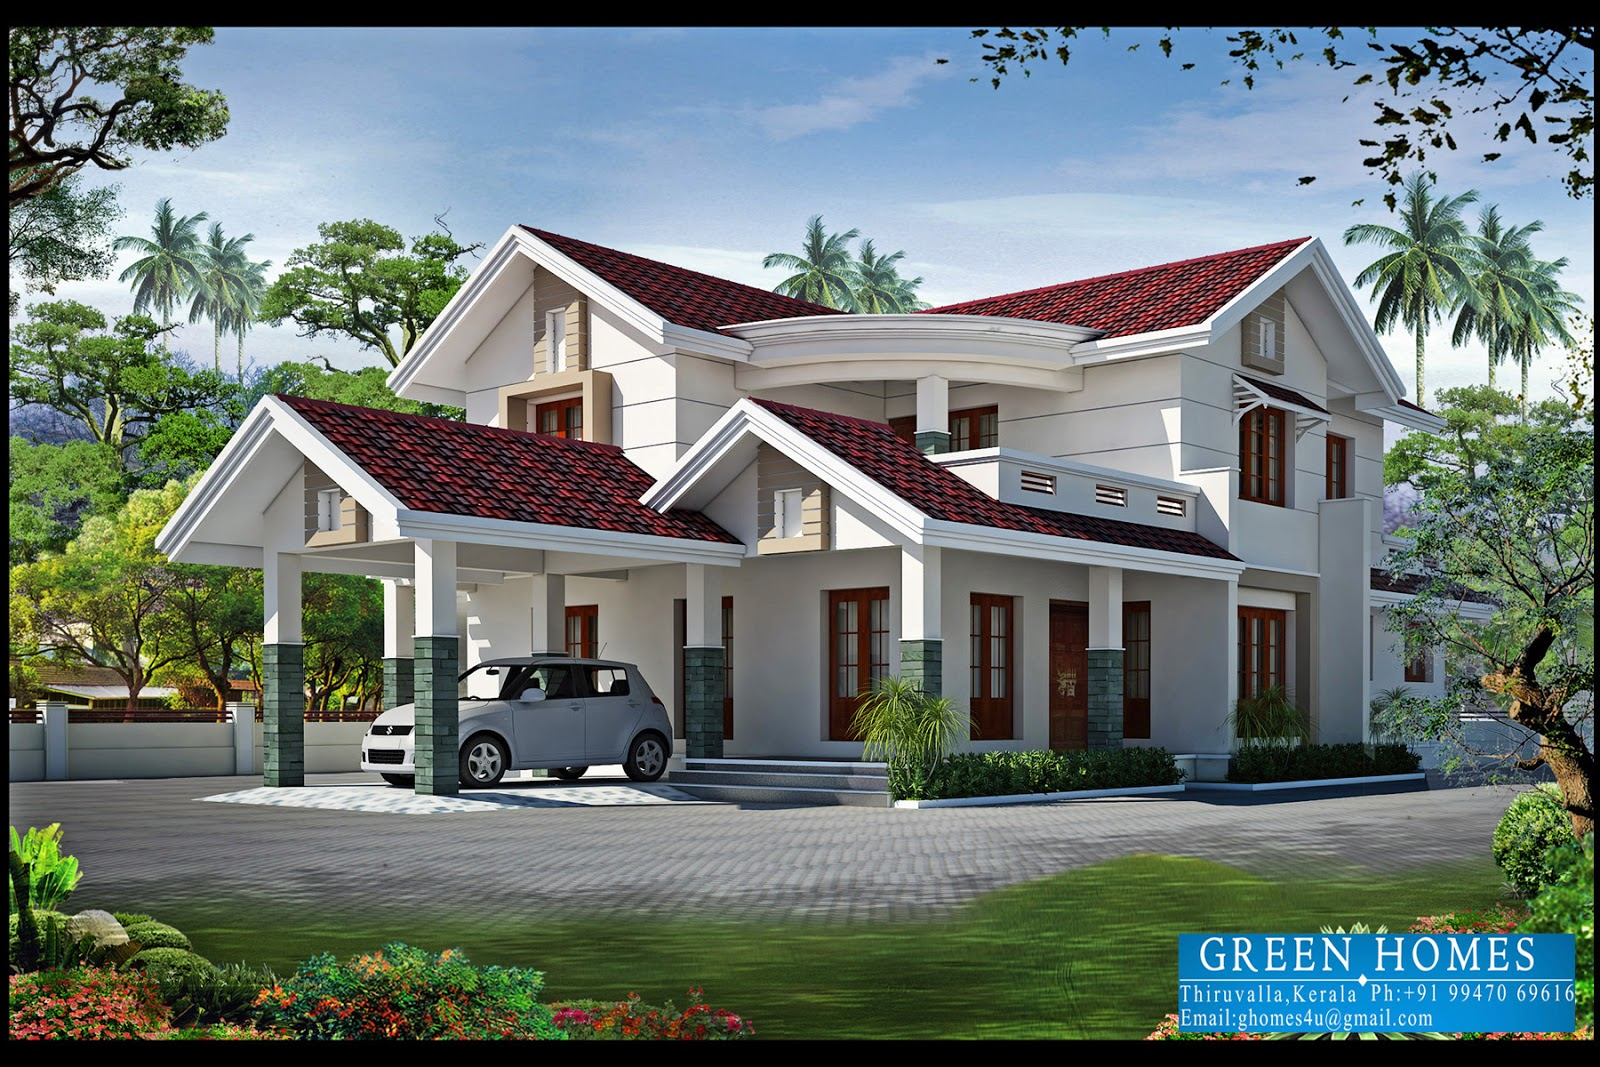 Green homes 4bhk kerala home design 2550 for New latest house design